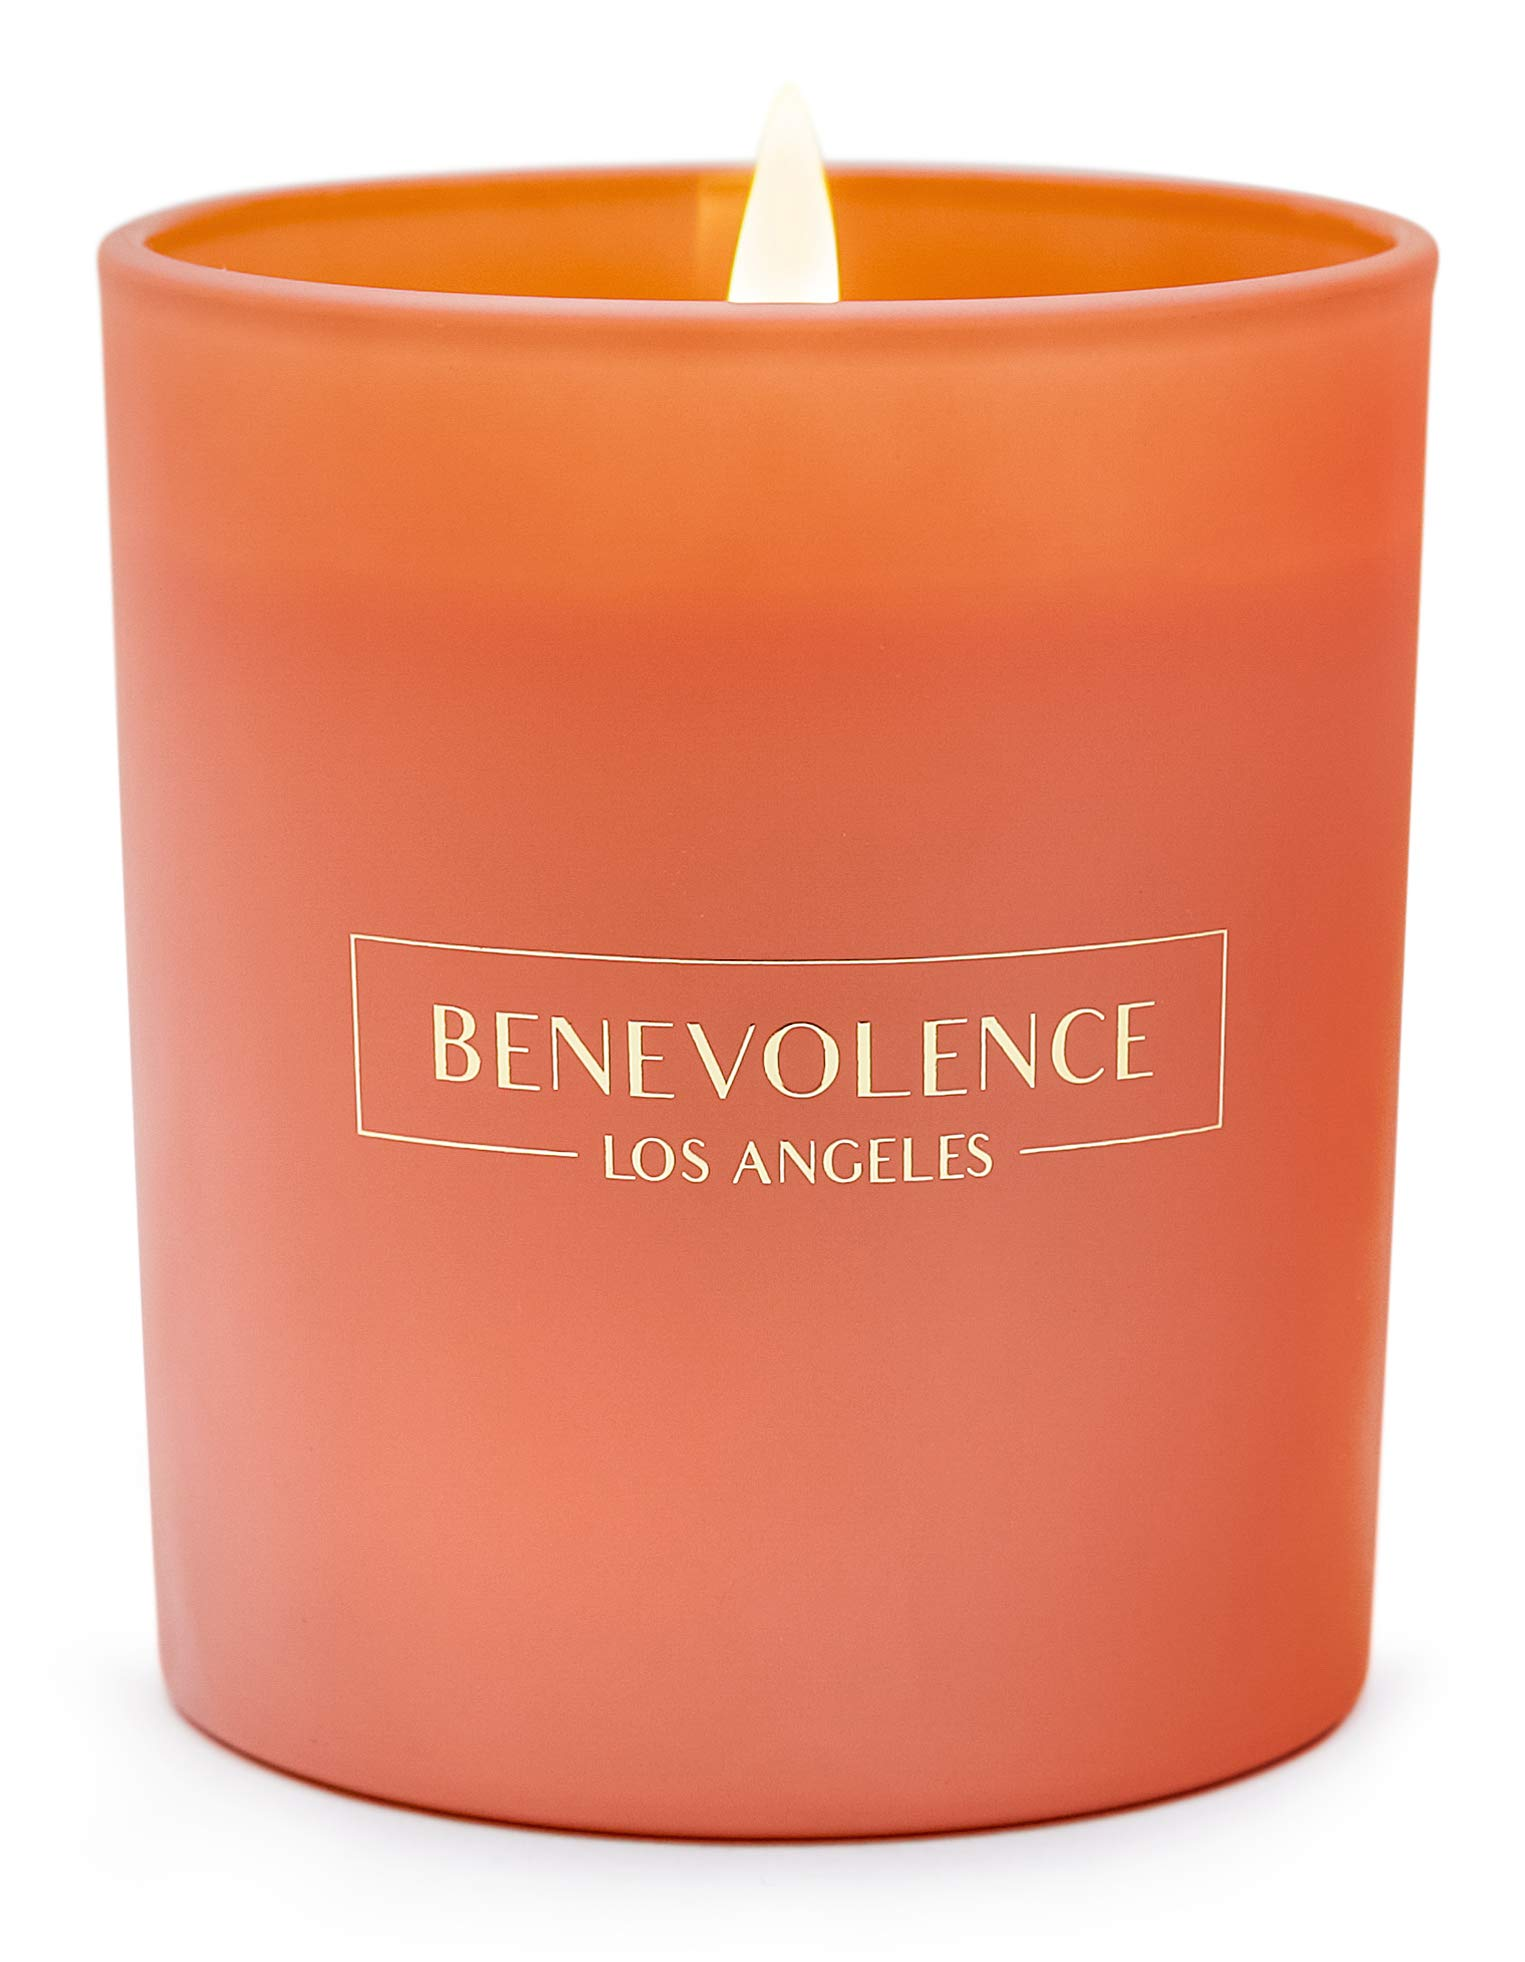 Benevolence Soy Candles Scented Candle